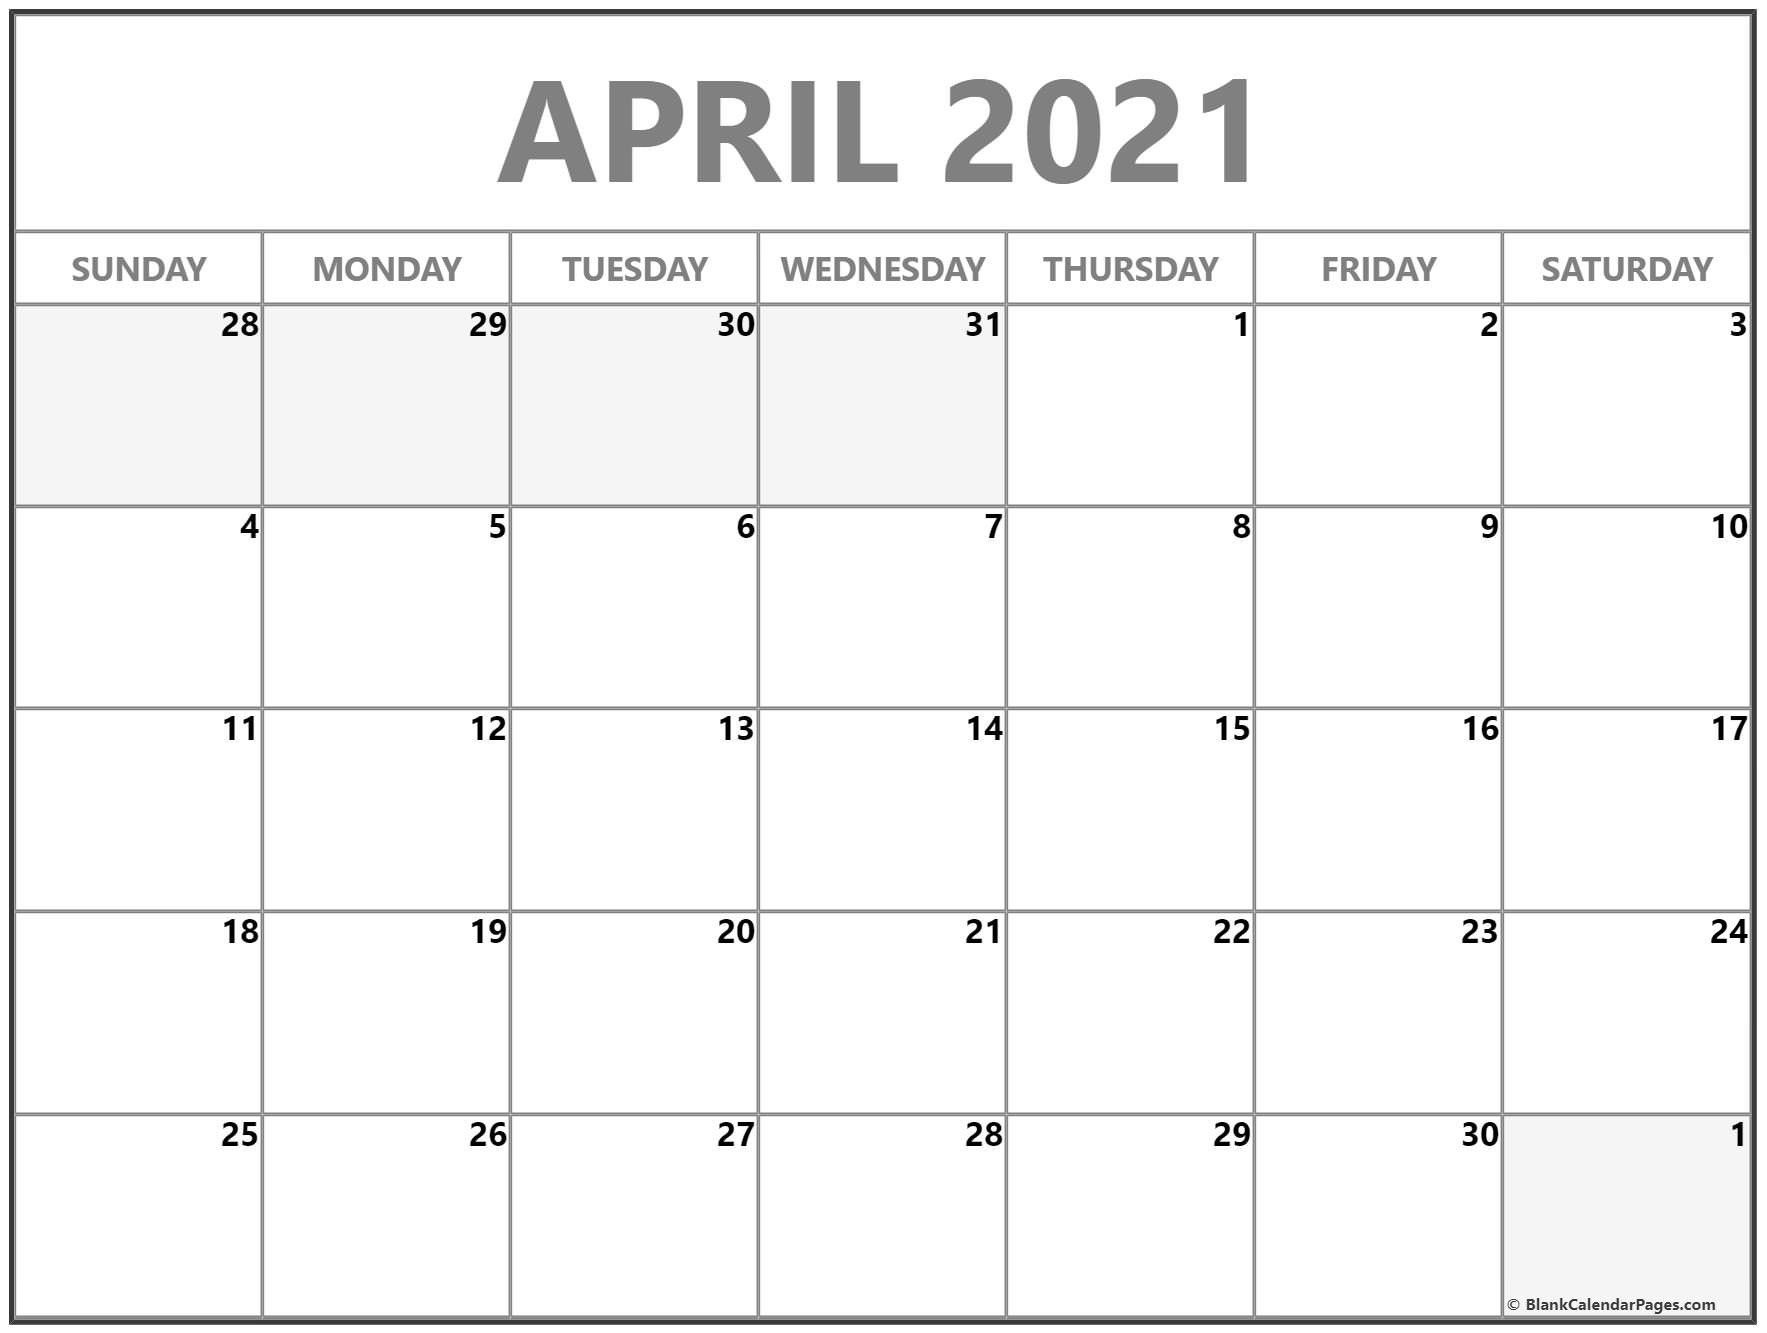 3 Month Calendar February To April 2021 In 2020 | Monthly Printable 3 Months At A Time Calendar 2021